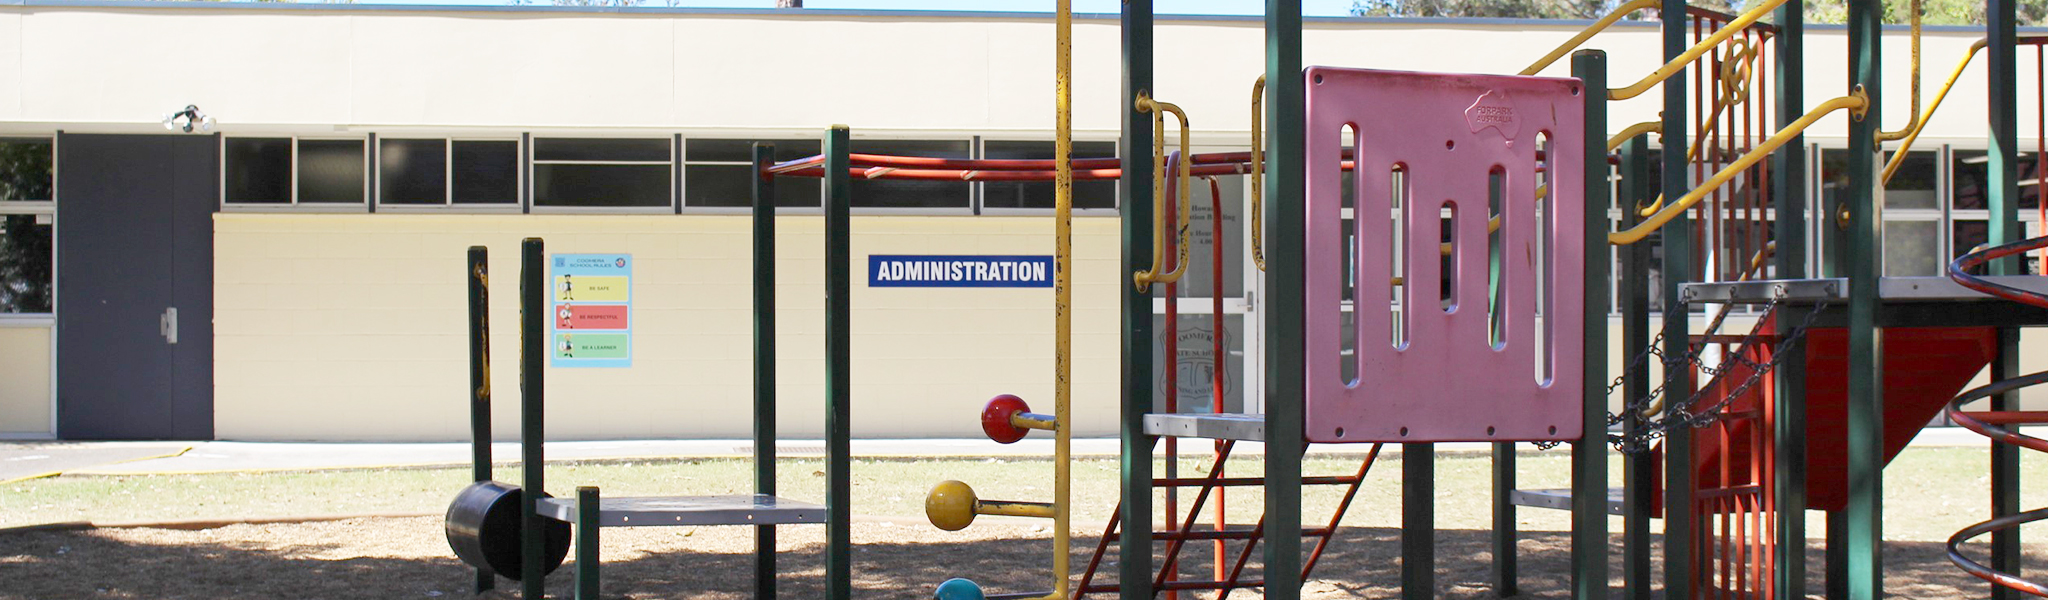 Playground and Admin building